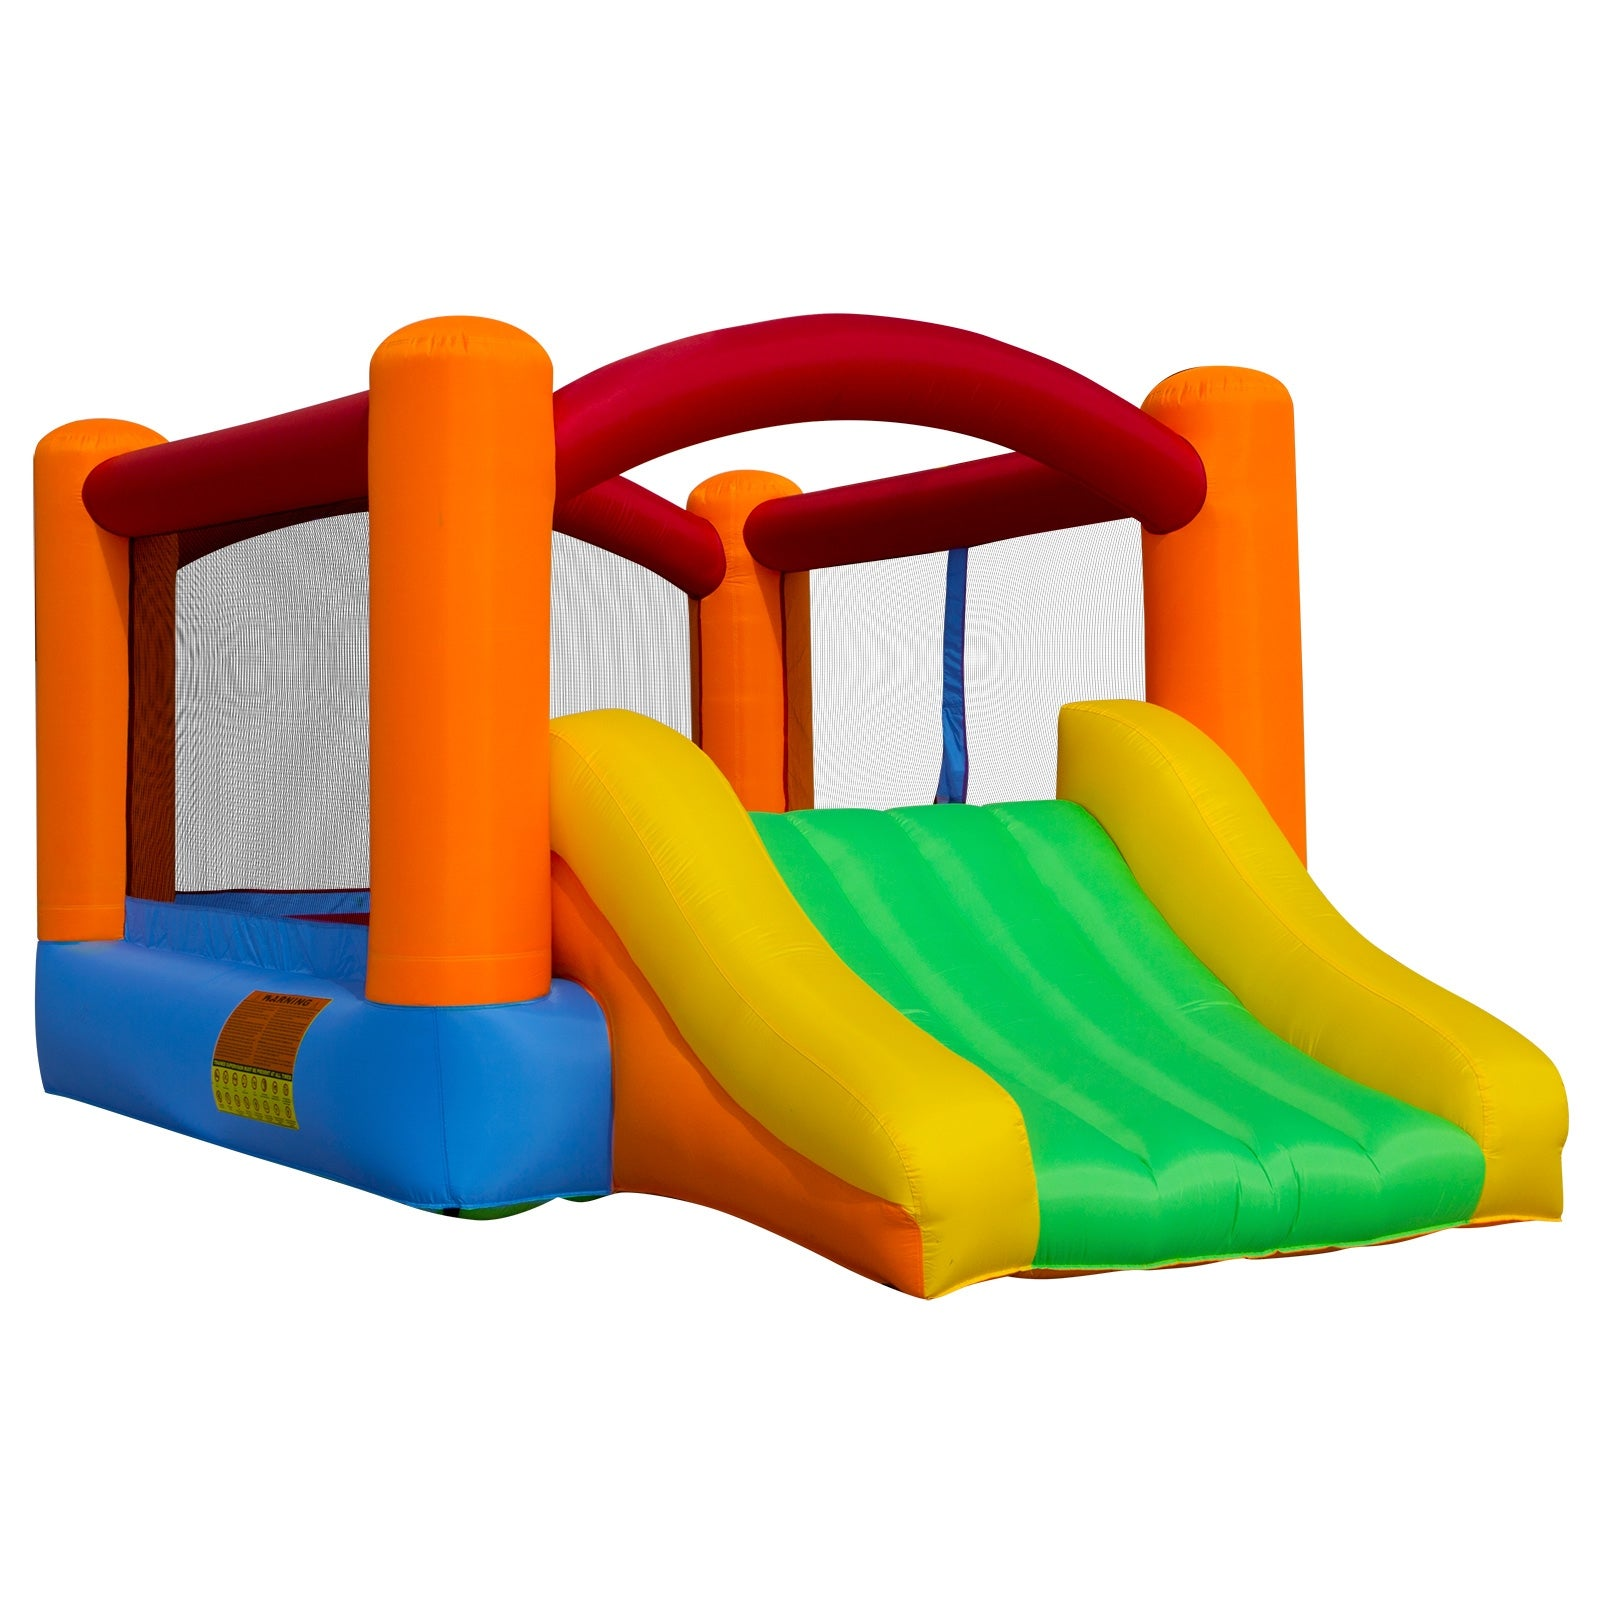 Prime Cloud 9 Bounce House With Slide With Blower Interior Design Ideas Gentotryabchikinfo